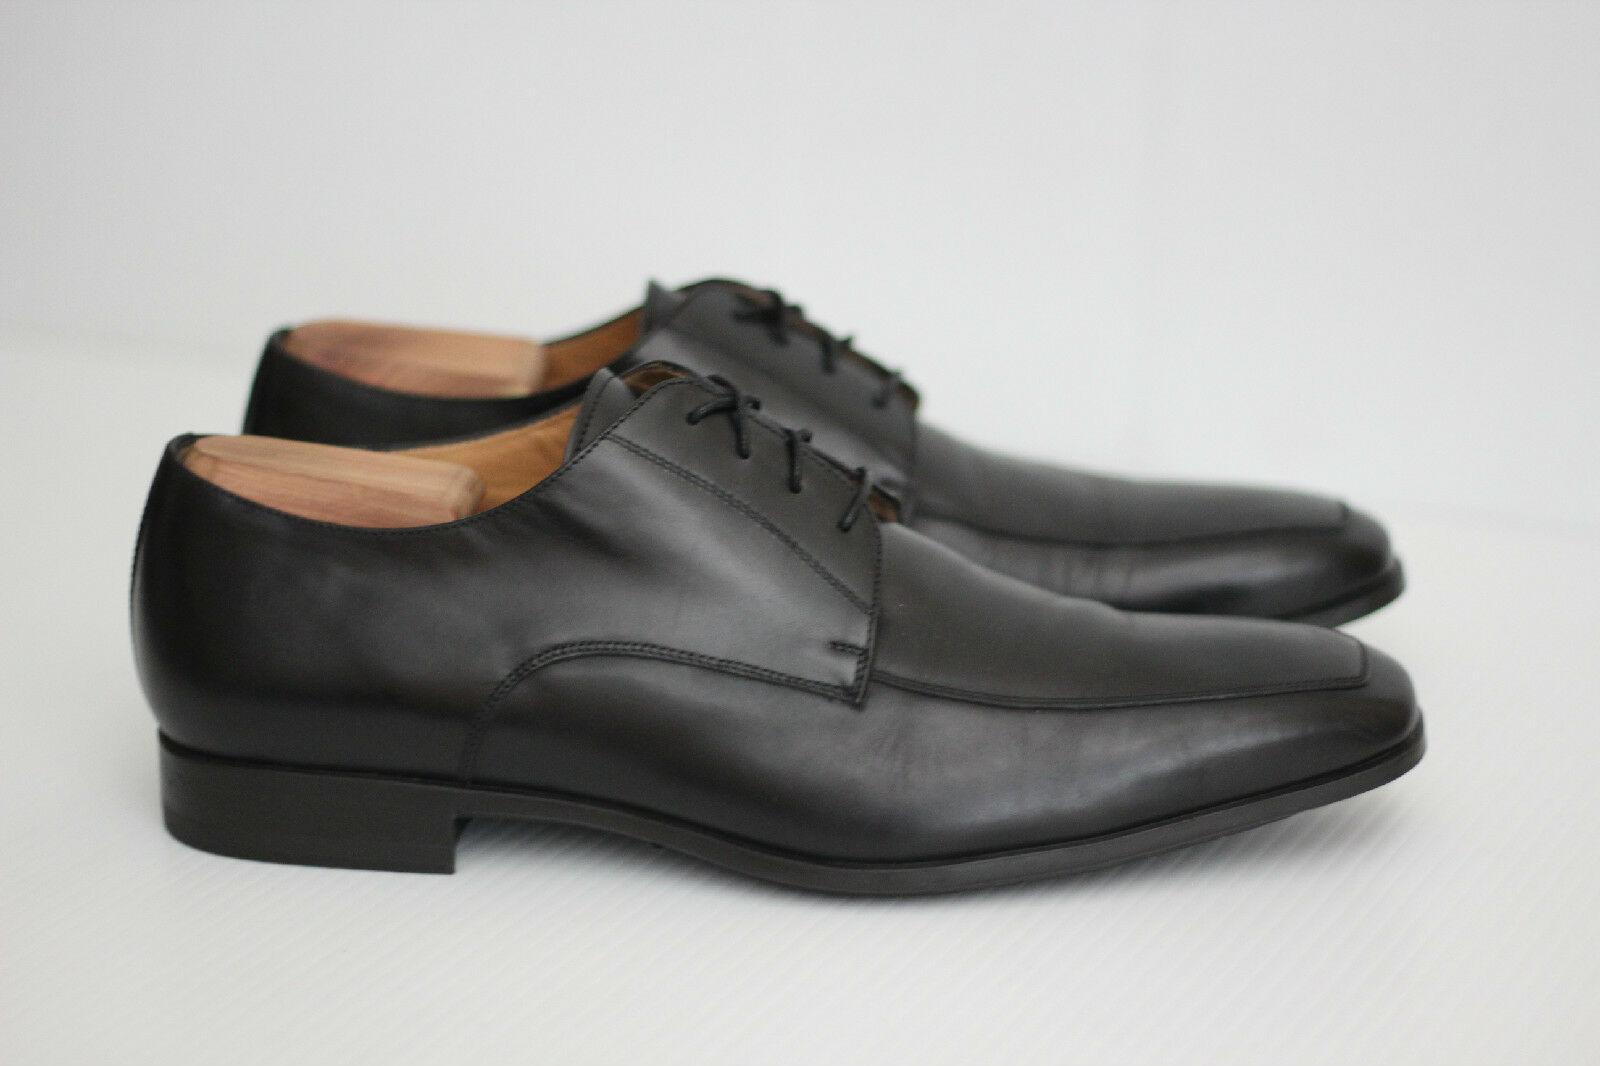 Santoni 'Prichard' Apron Toe Derby - nero - Dimensione 9 EE - 11927 (Q1)